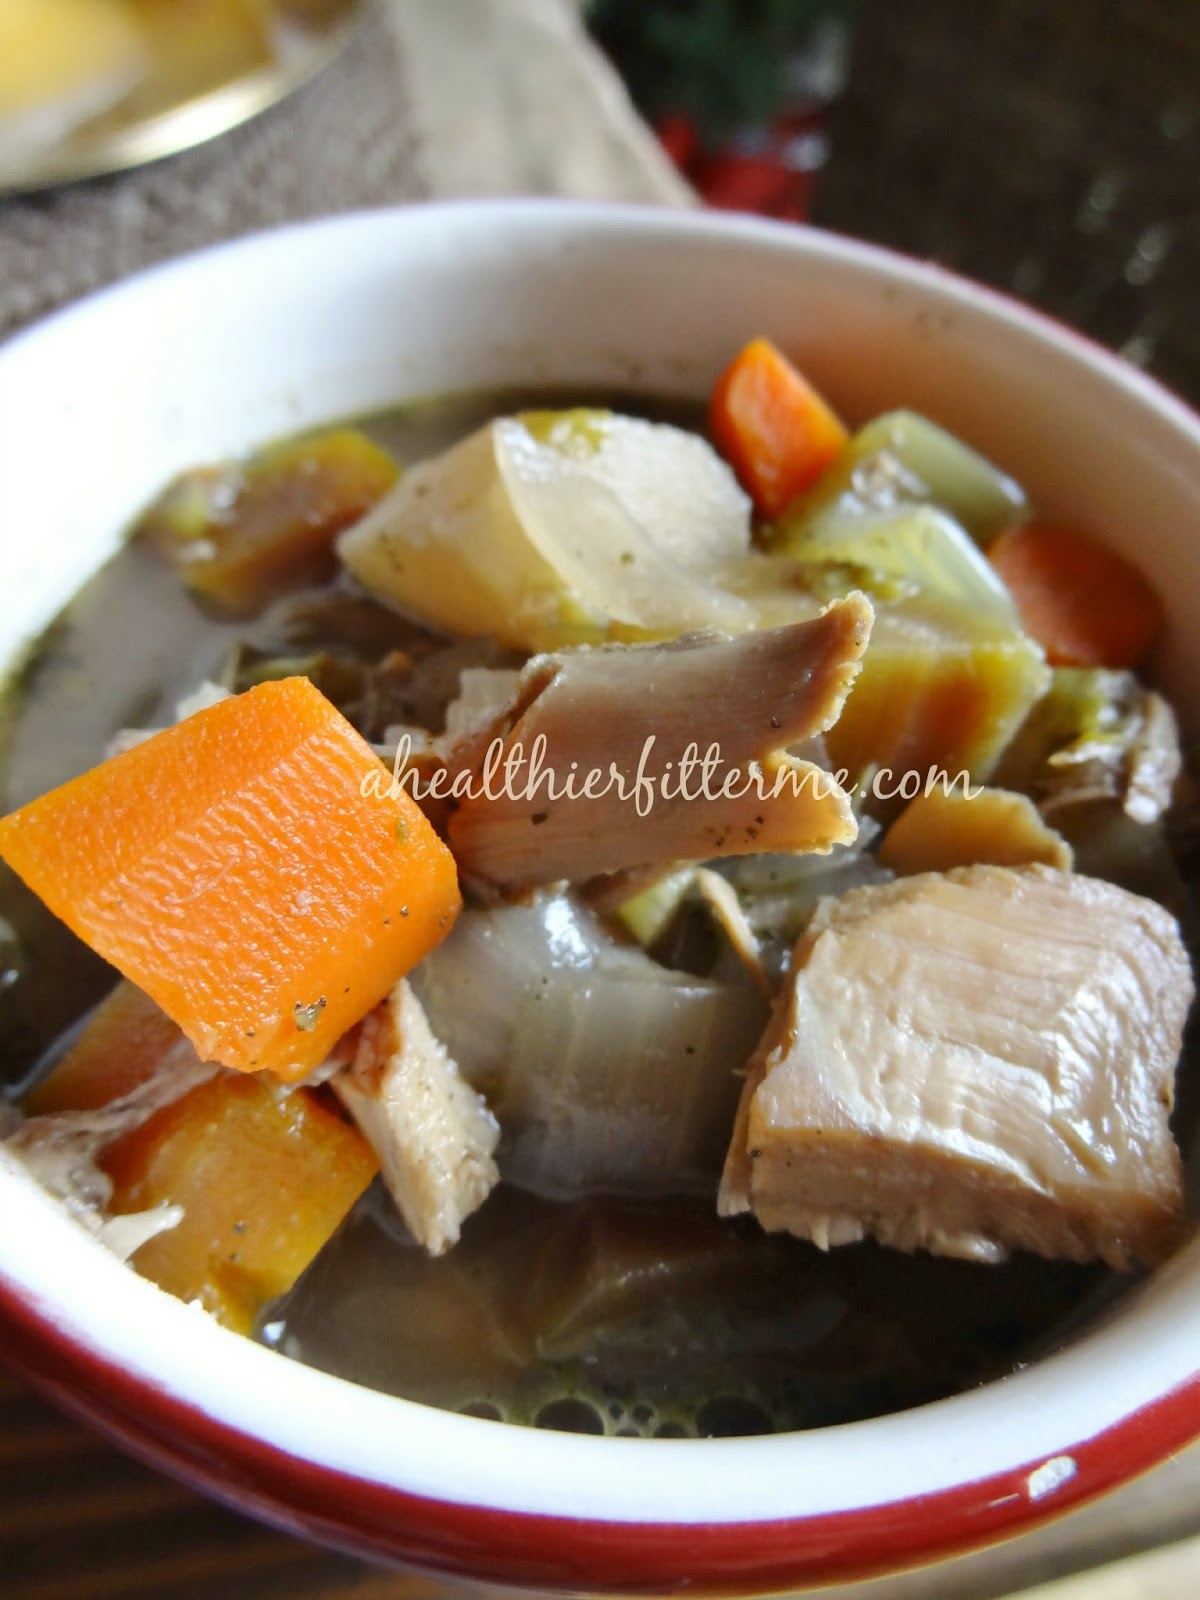 http://www.ahealthierfitterme.com/2014/12/thanksgiving-leftovers-soup.html